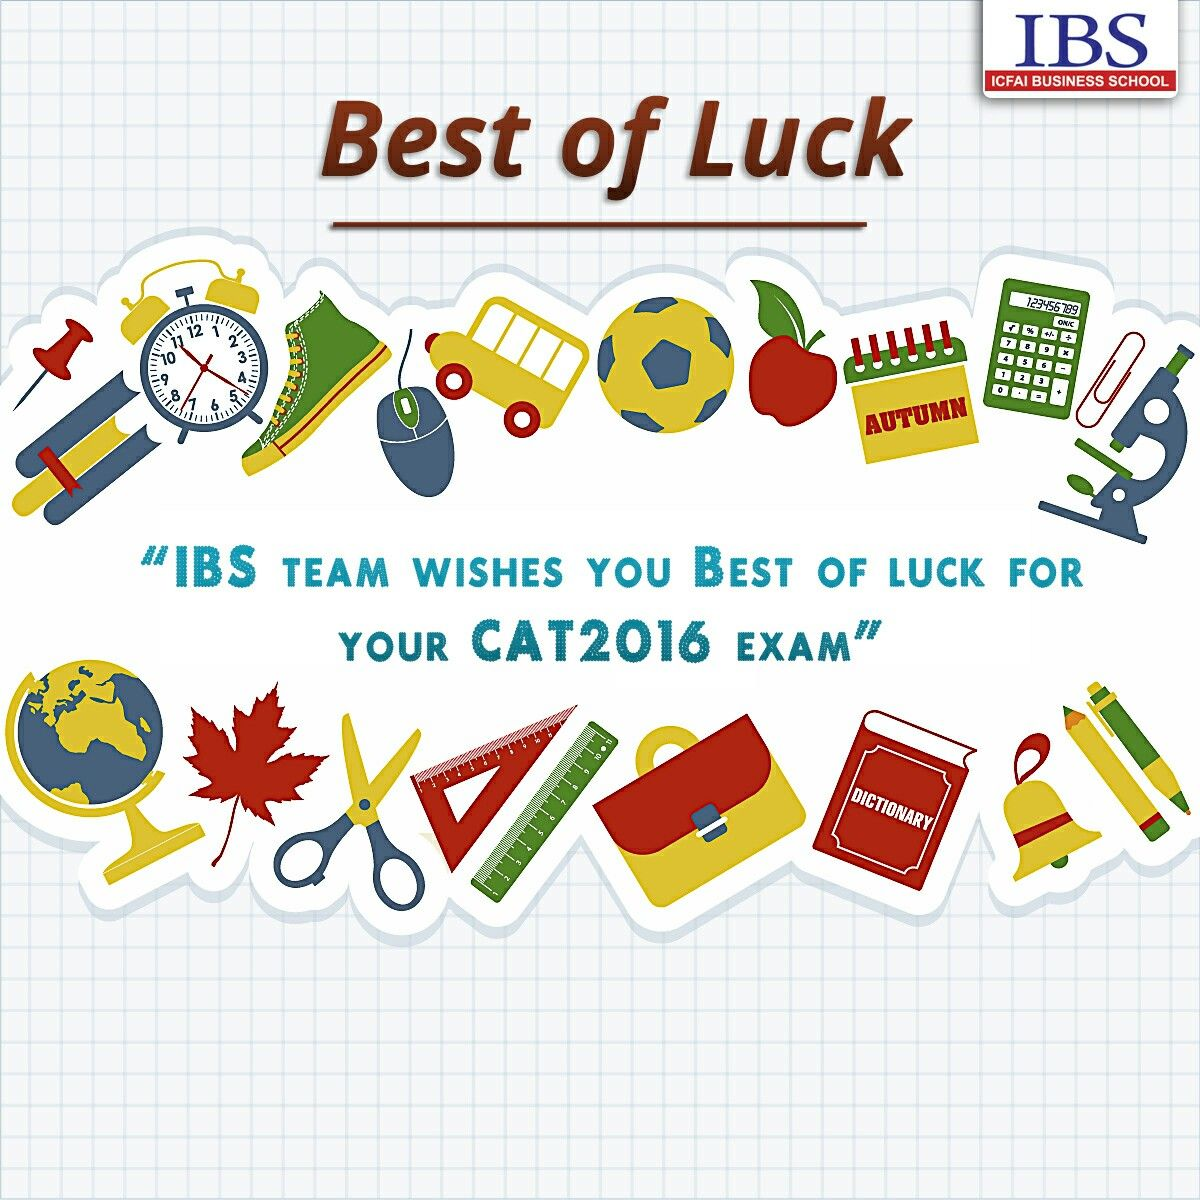 ibs wishes you best of luck for your cat exam